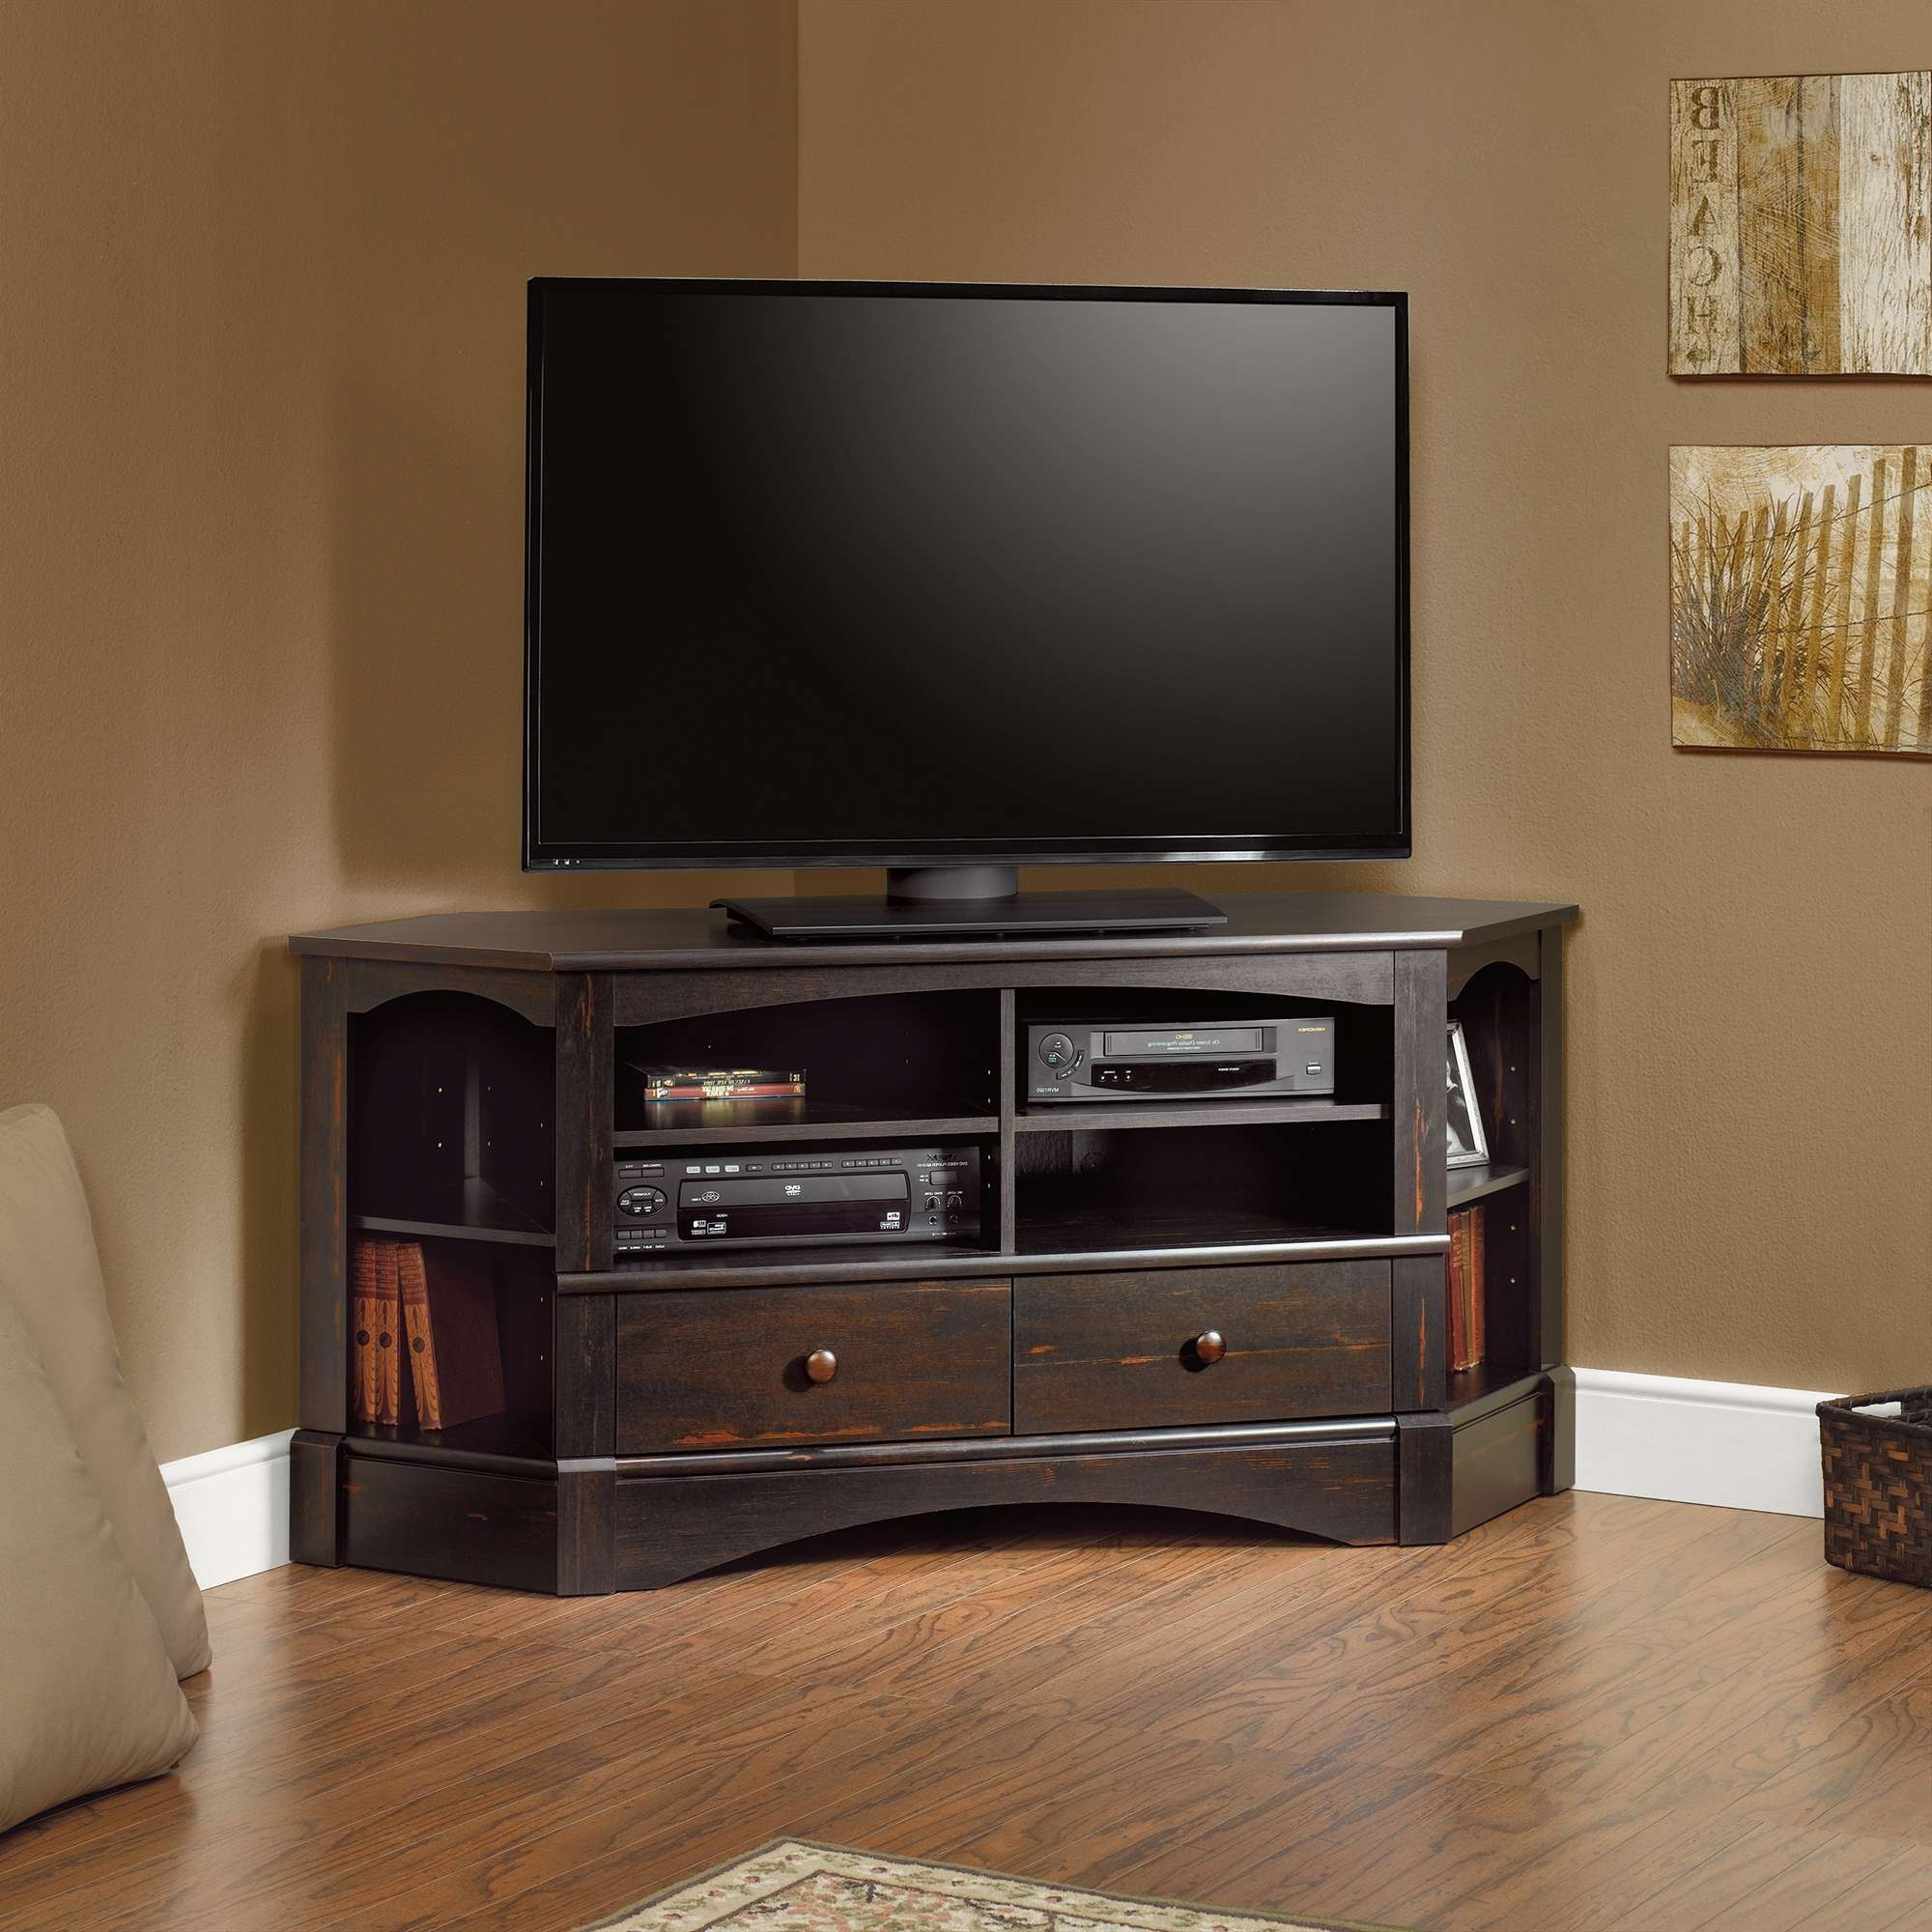 Harbor View | Corner Entertainment Credenza | 402902 | Sauder Intended For Corner Tv Cabinets (View 7 of 20)